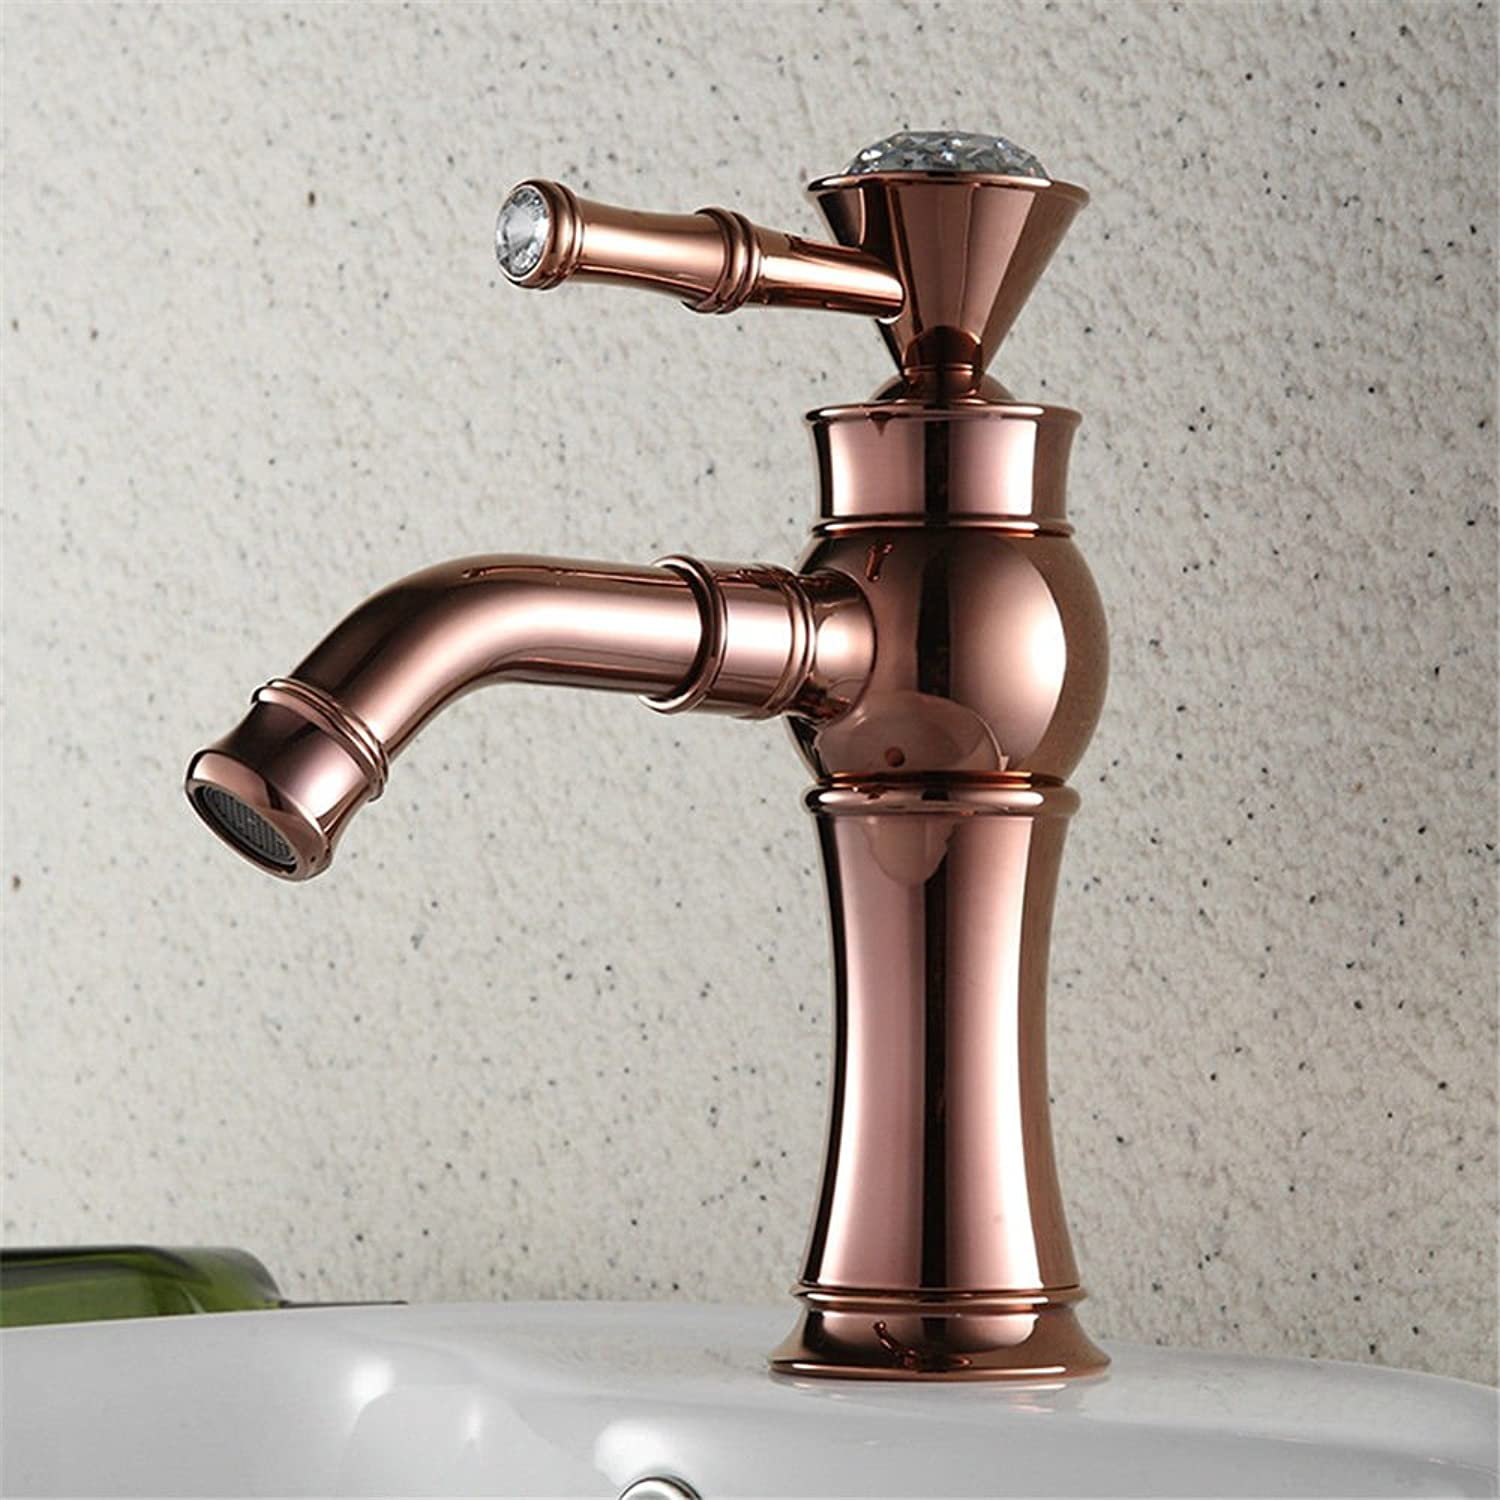 Lpophy Bathroom Sink Mixer Taps Faucet Bath Waterfall Cold and Hot Water Tap for Washroom Bathroom and Kitchen Lifting